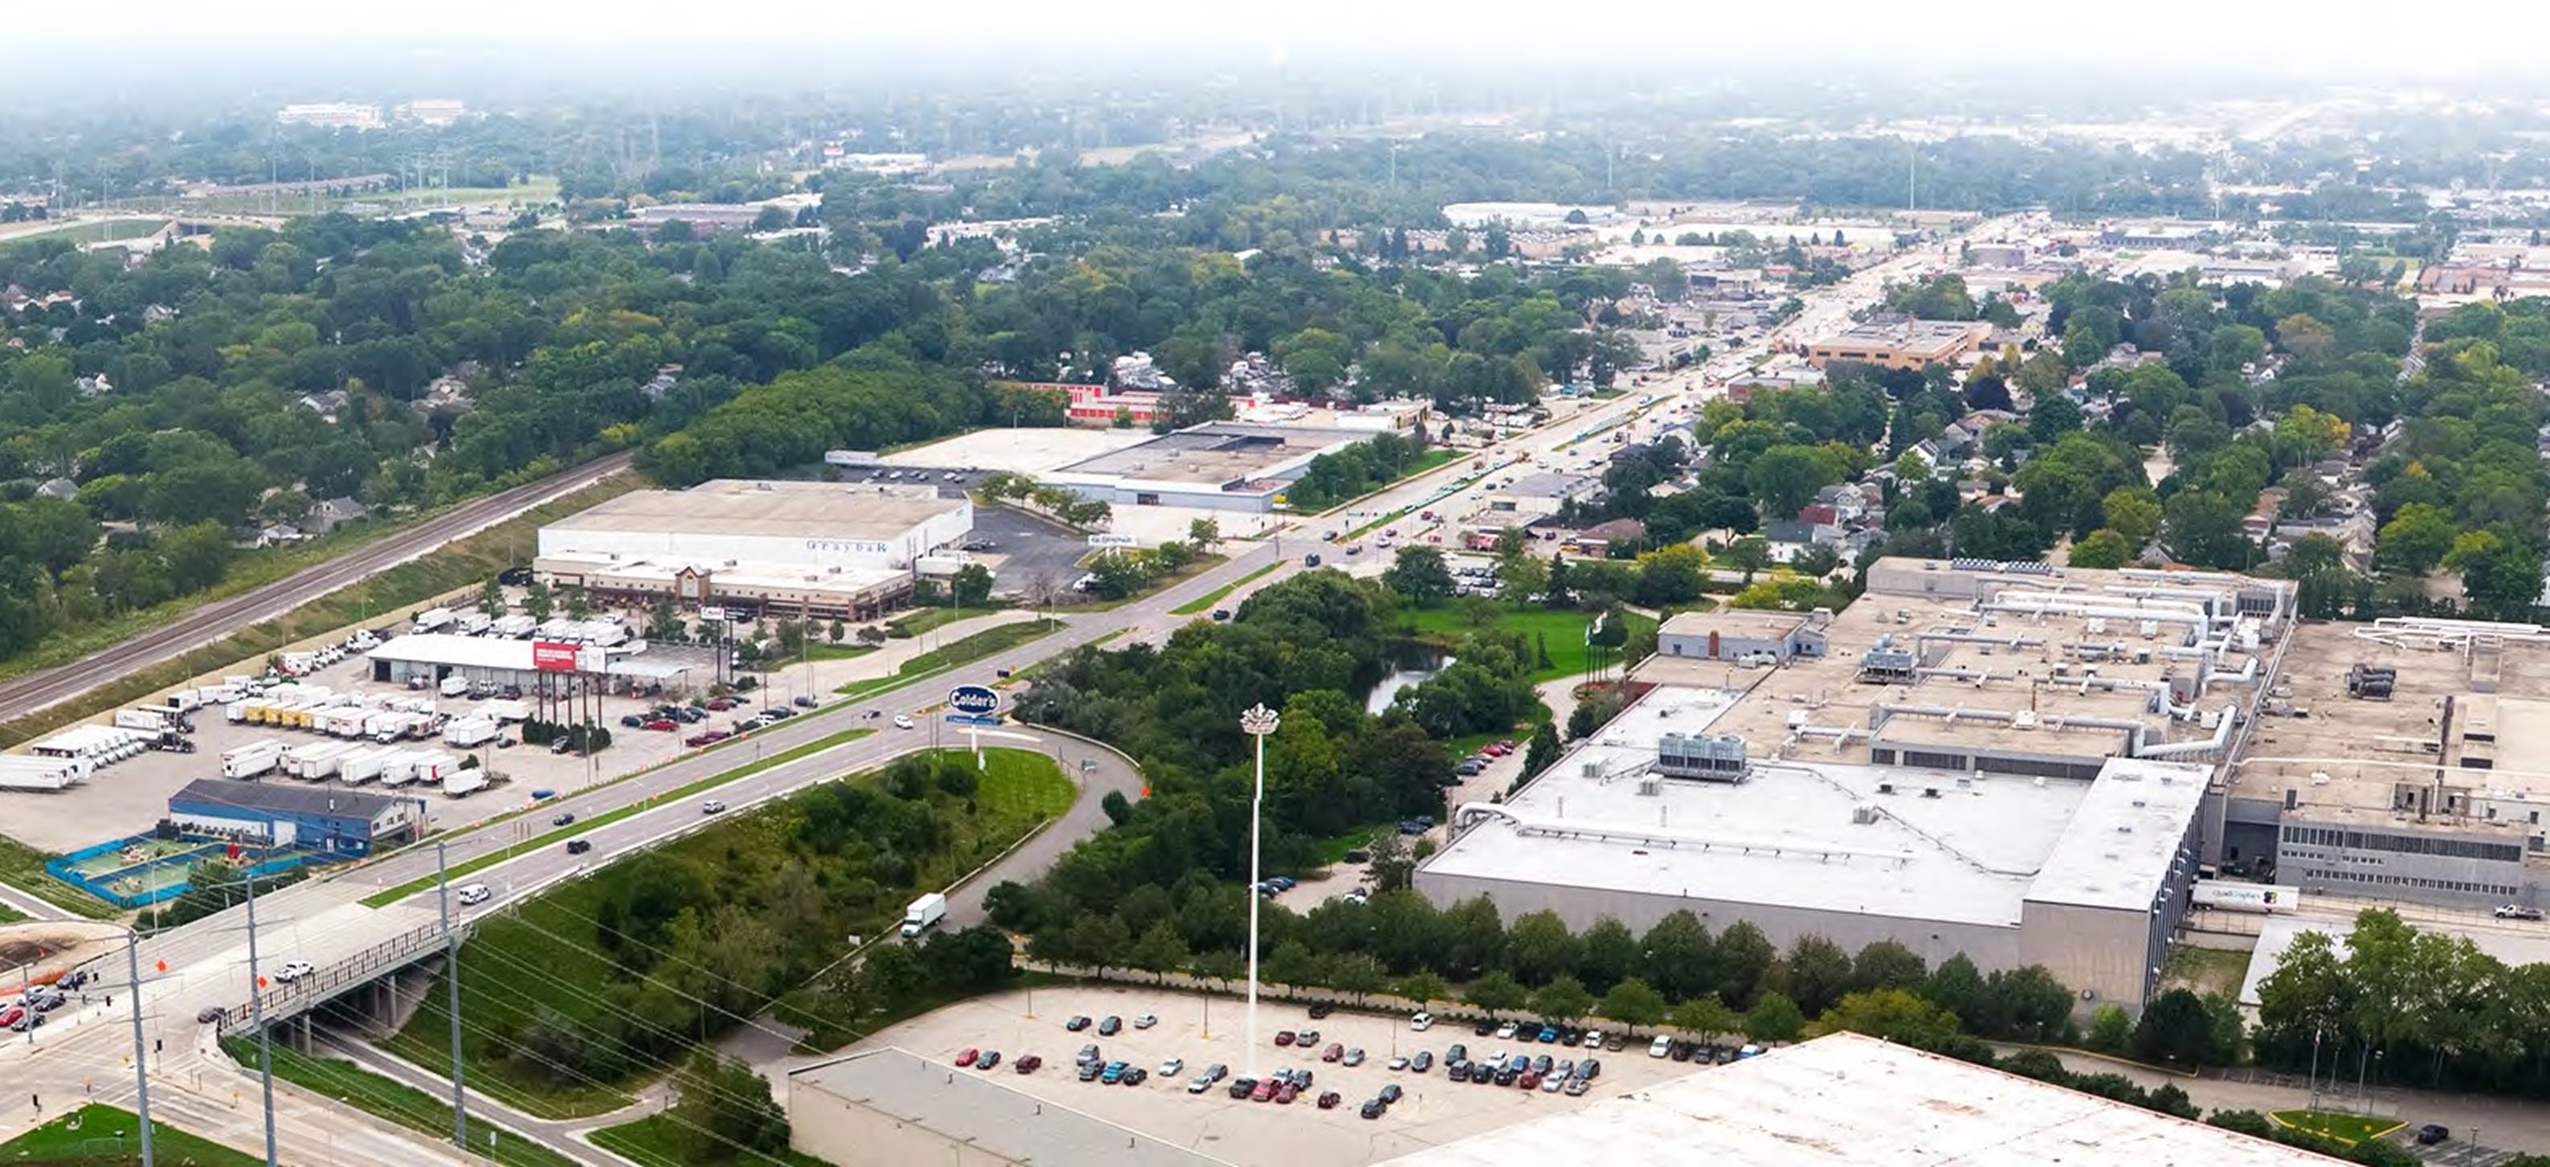 Aerial photograph of Hwy 100 showing buildings, street, and parking lots